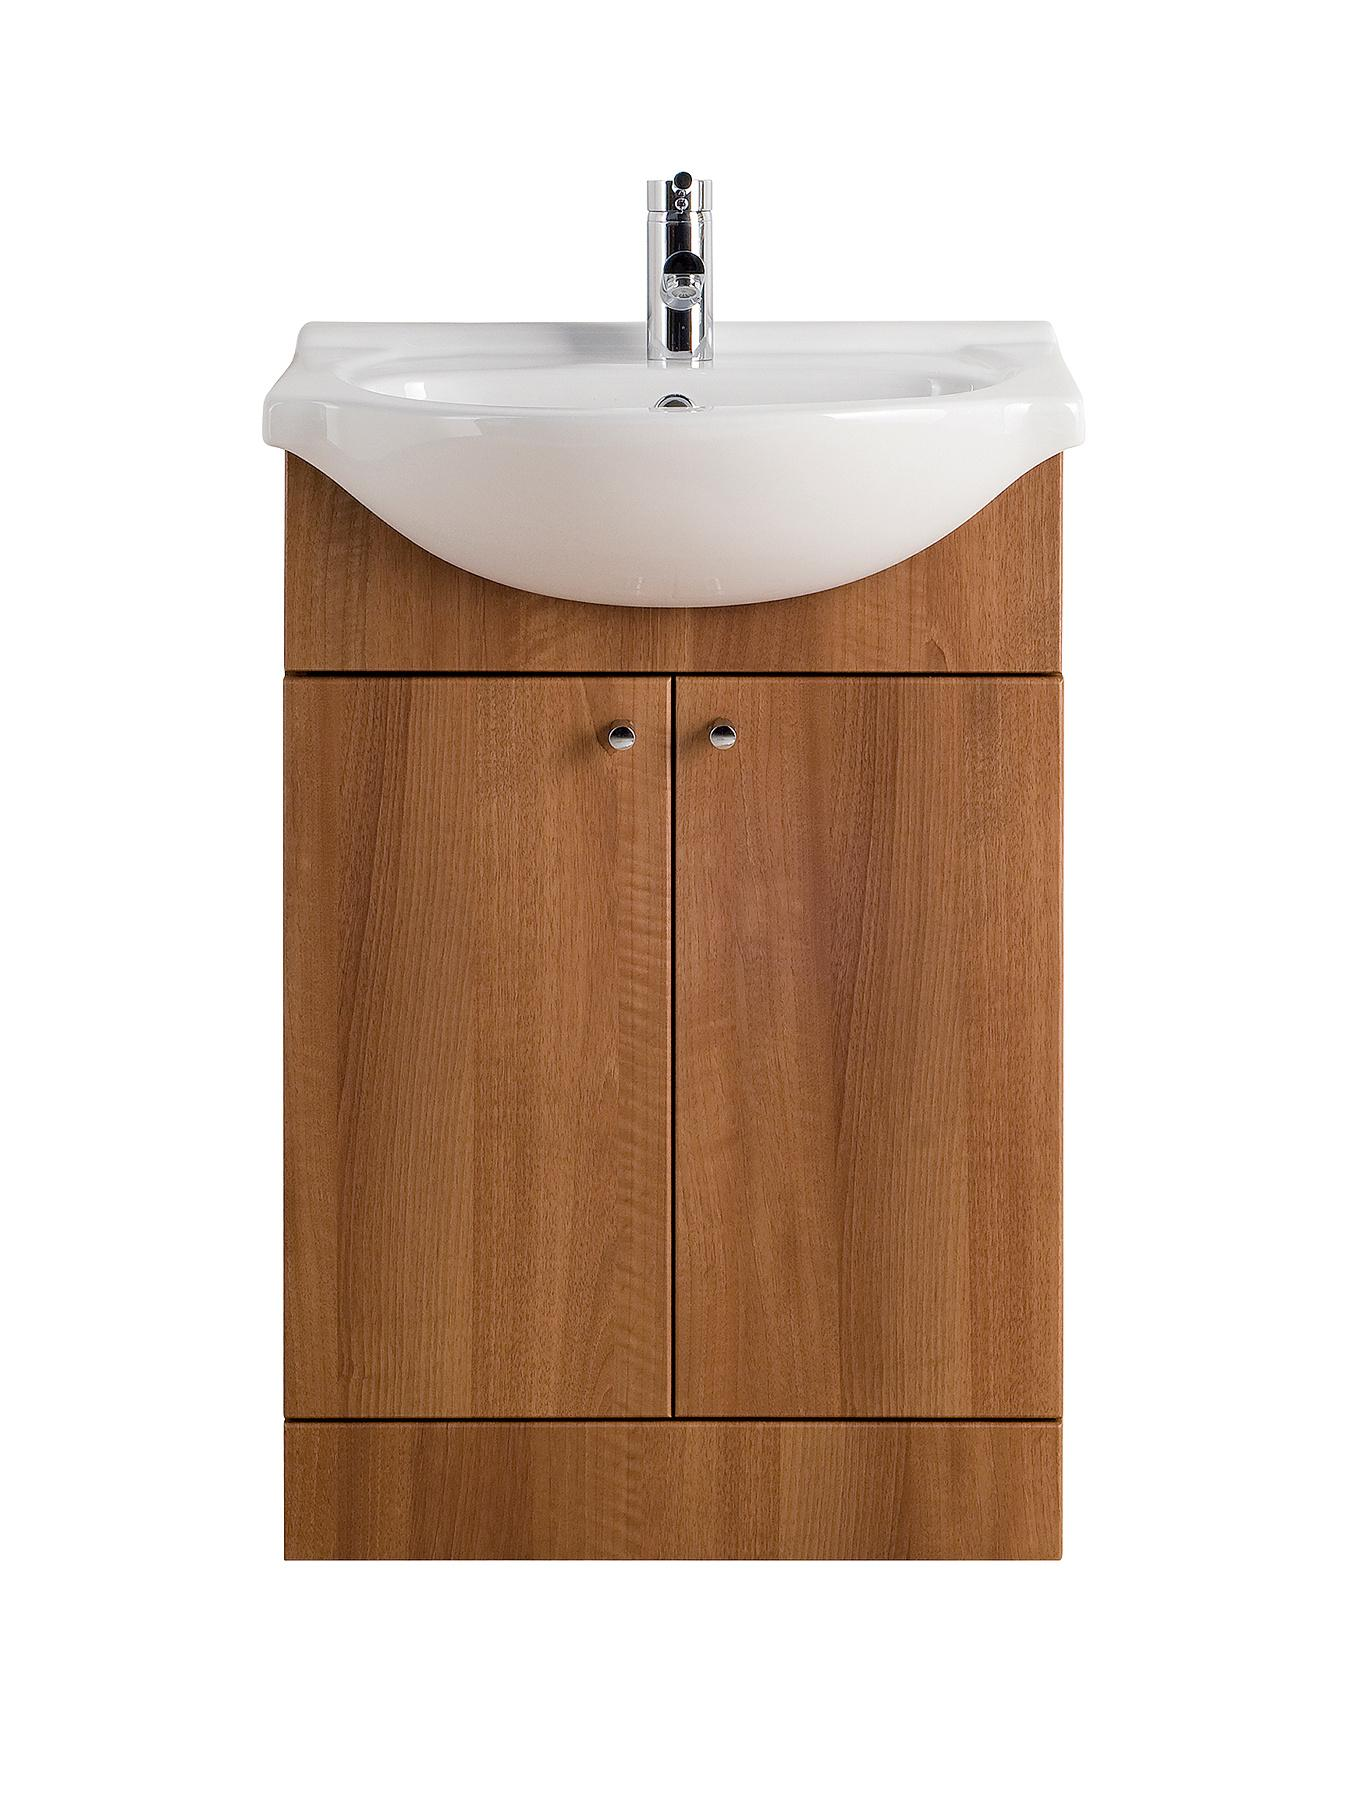 550mm Vanity Unit - Walnut